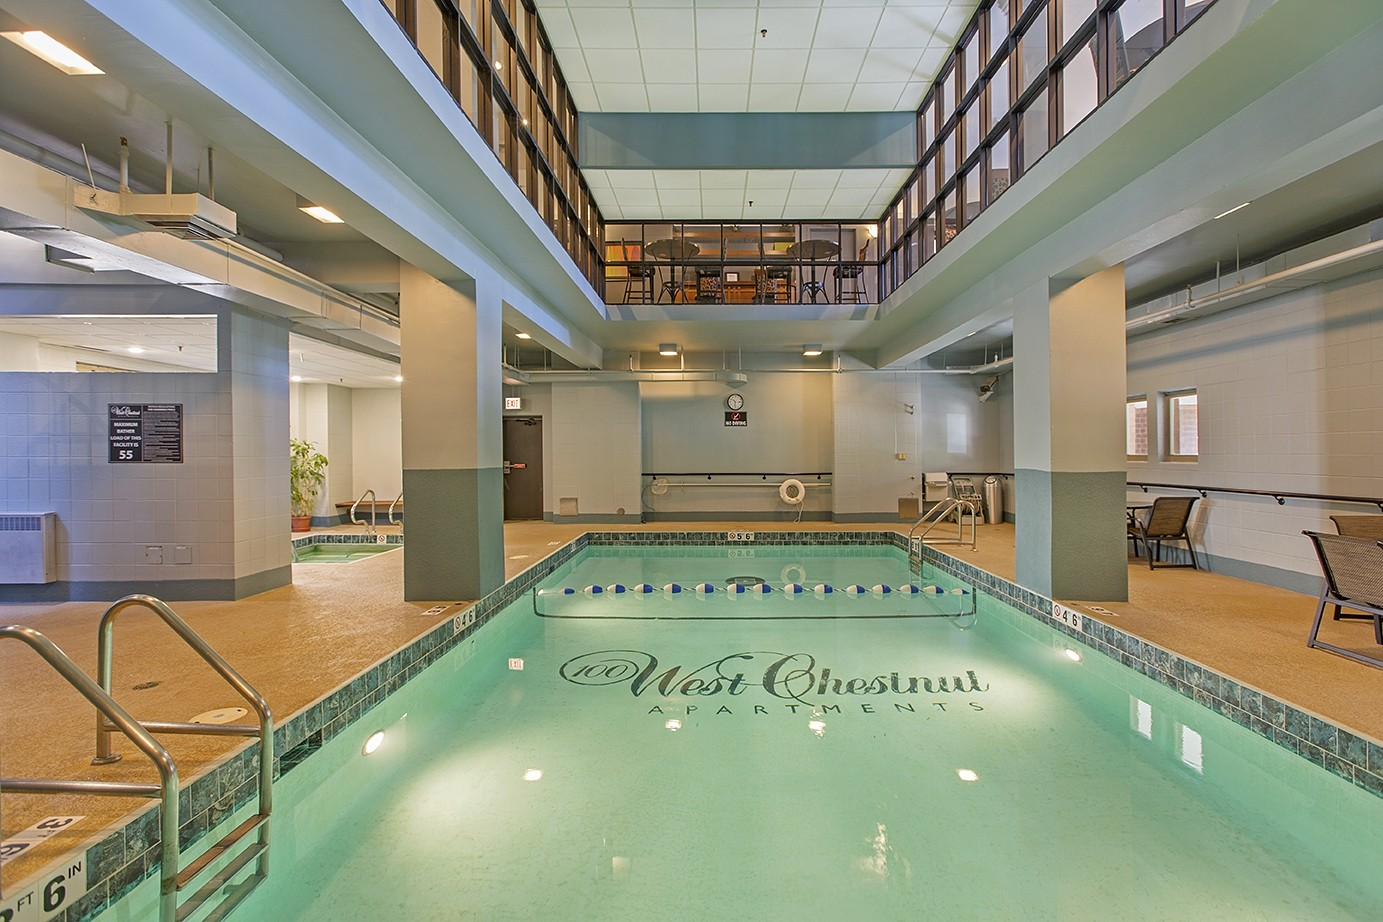 100 West Chestnut Apartments: Pool